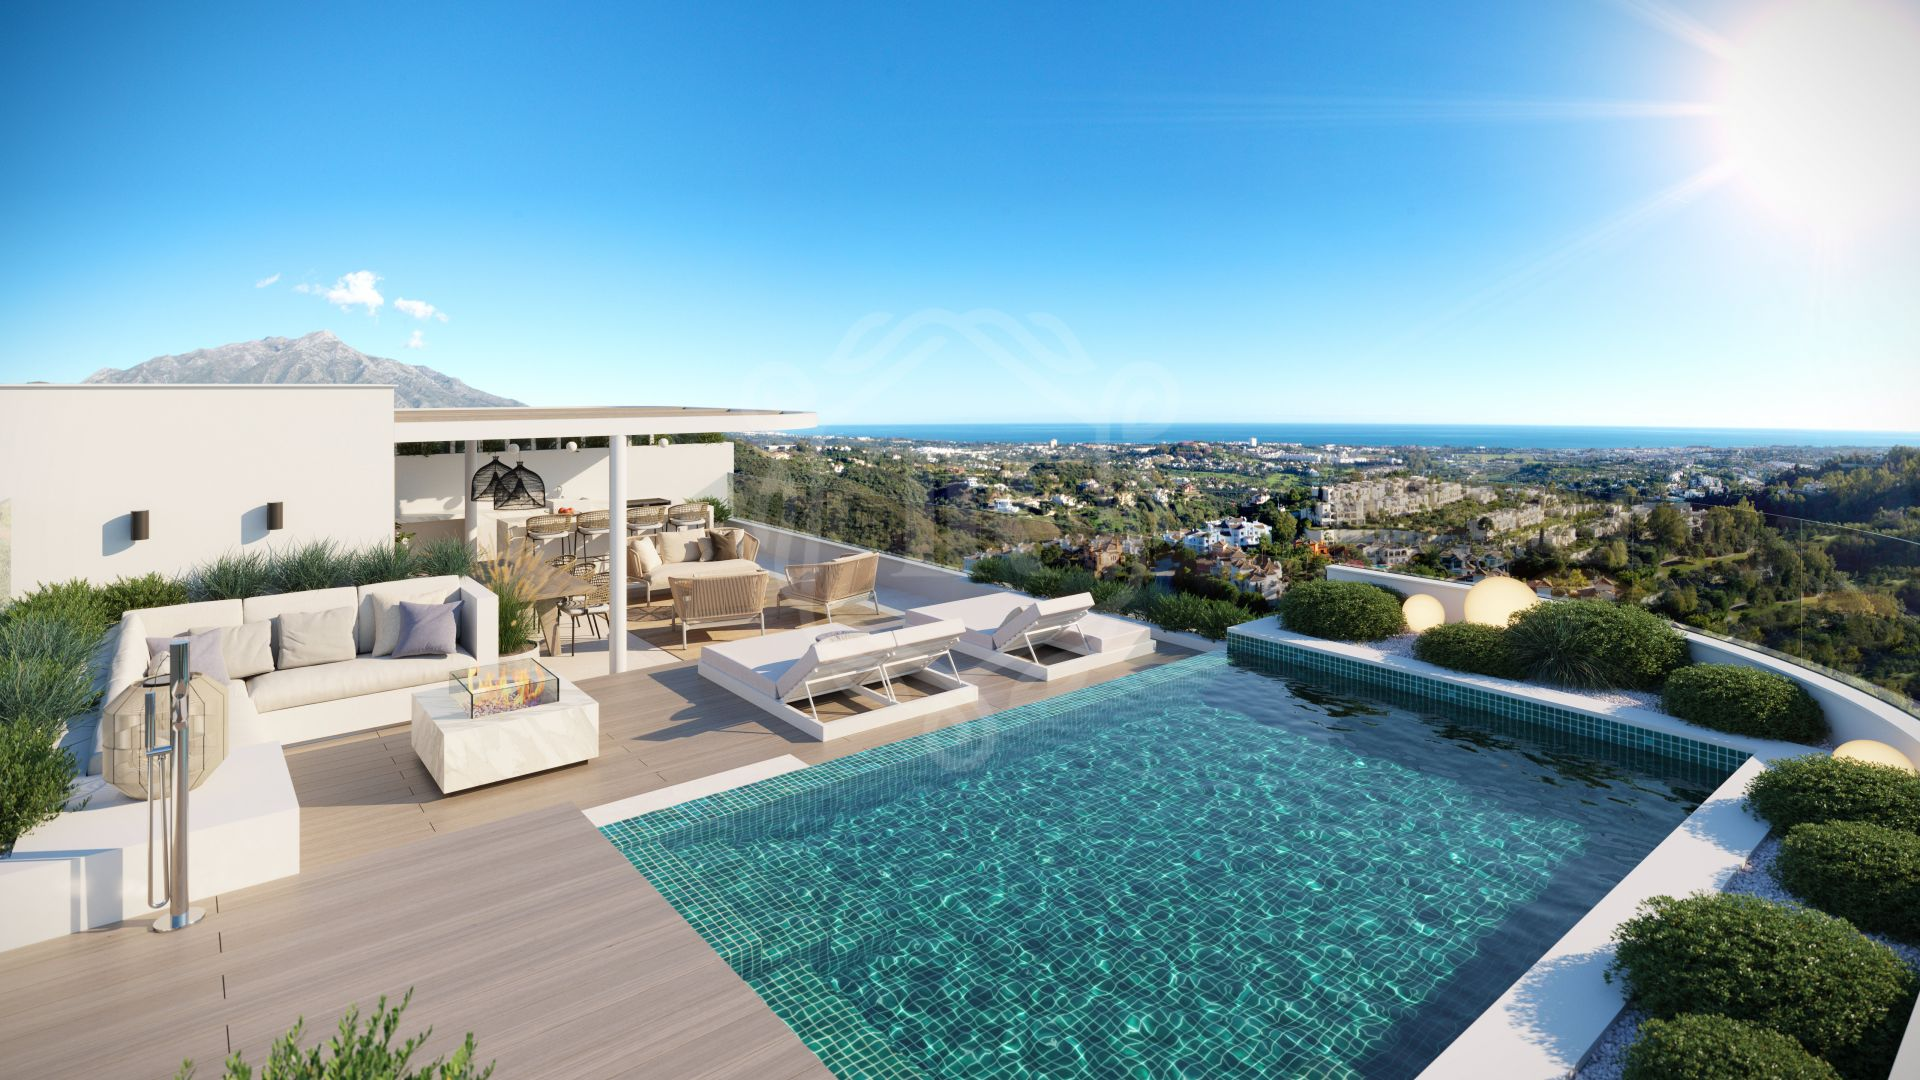 Brand new apartment with impressive views - The View Marbella